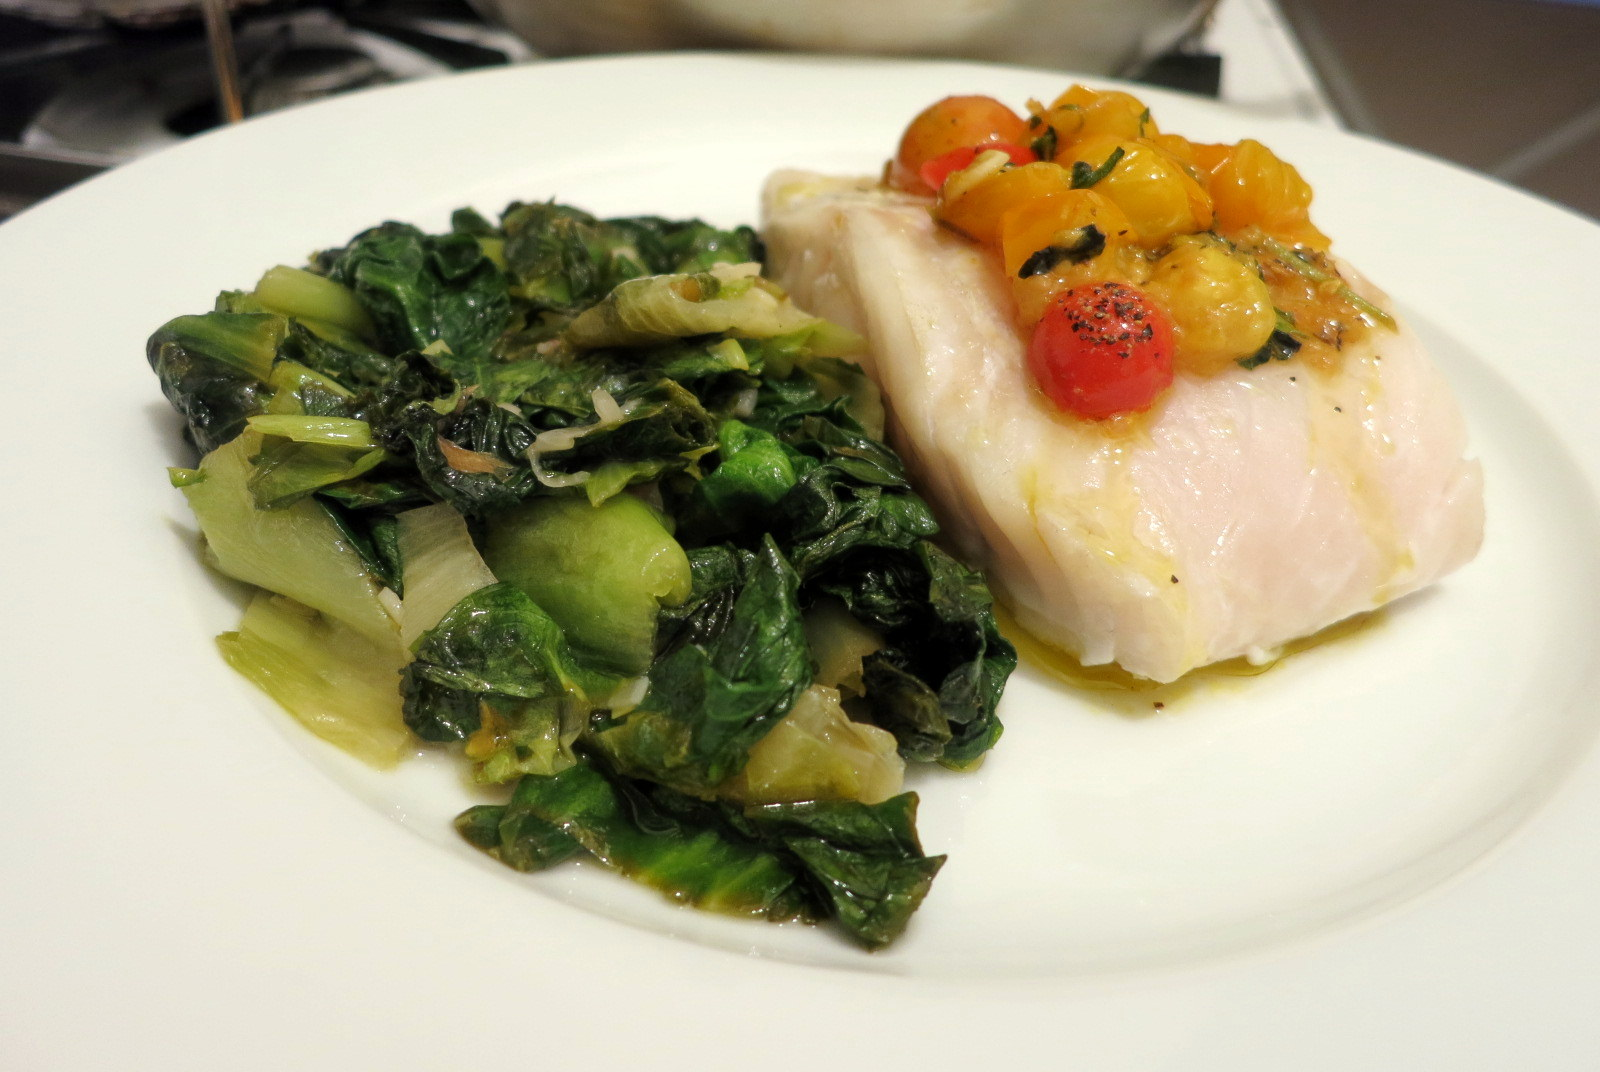 Roast cod, skillet escarole, heirloom tomatoes